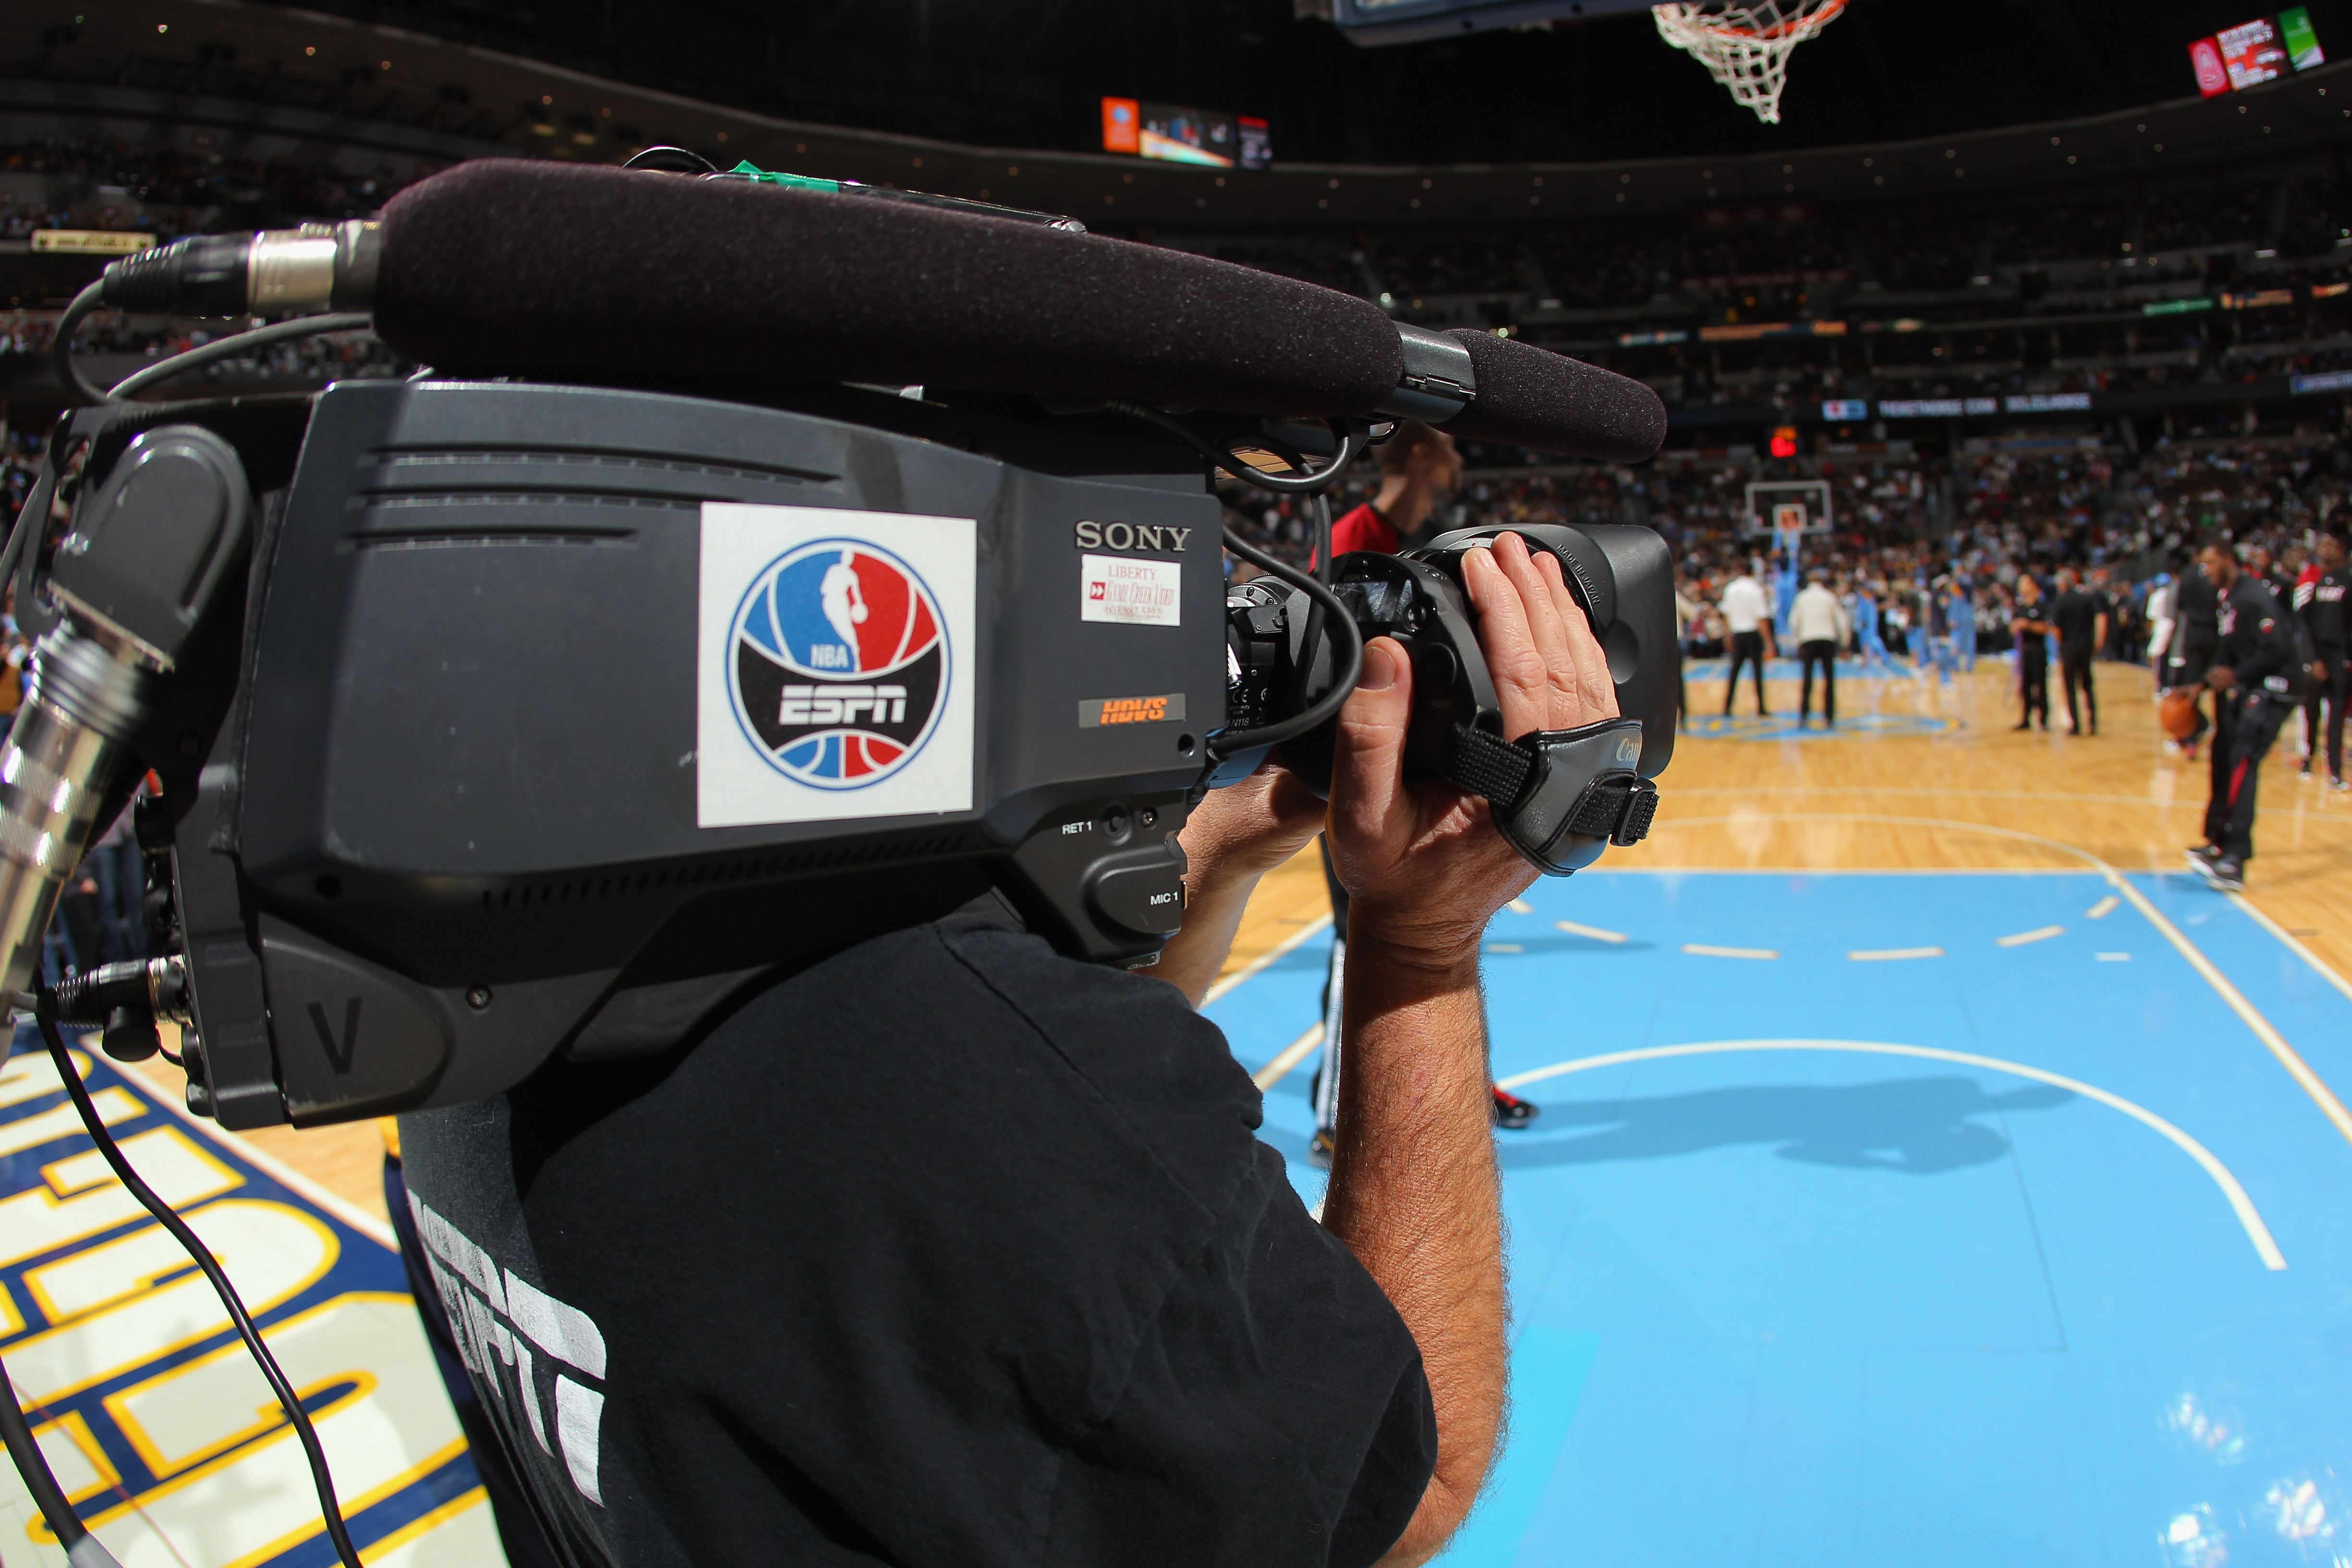 an ESPN cameraman stands in front of a basketball court